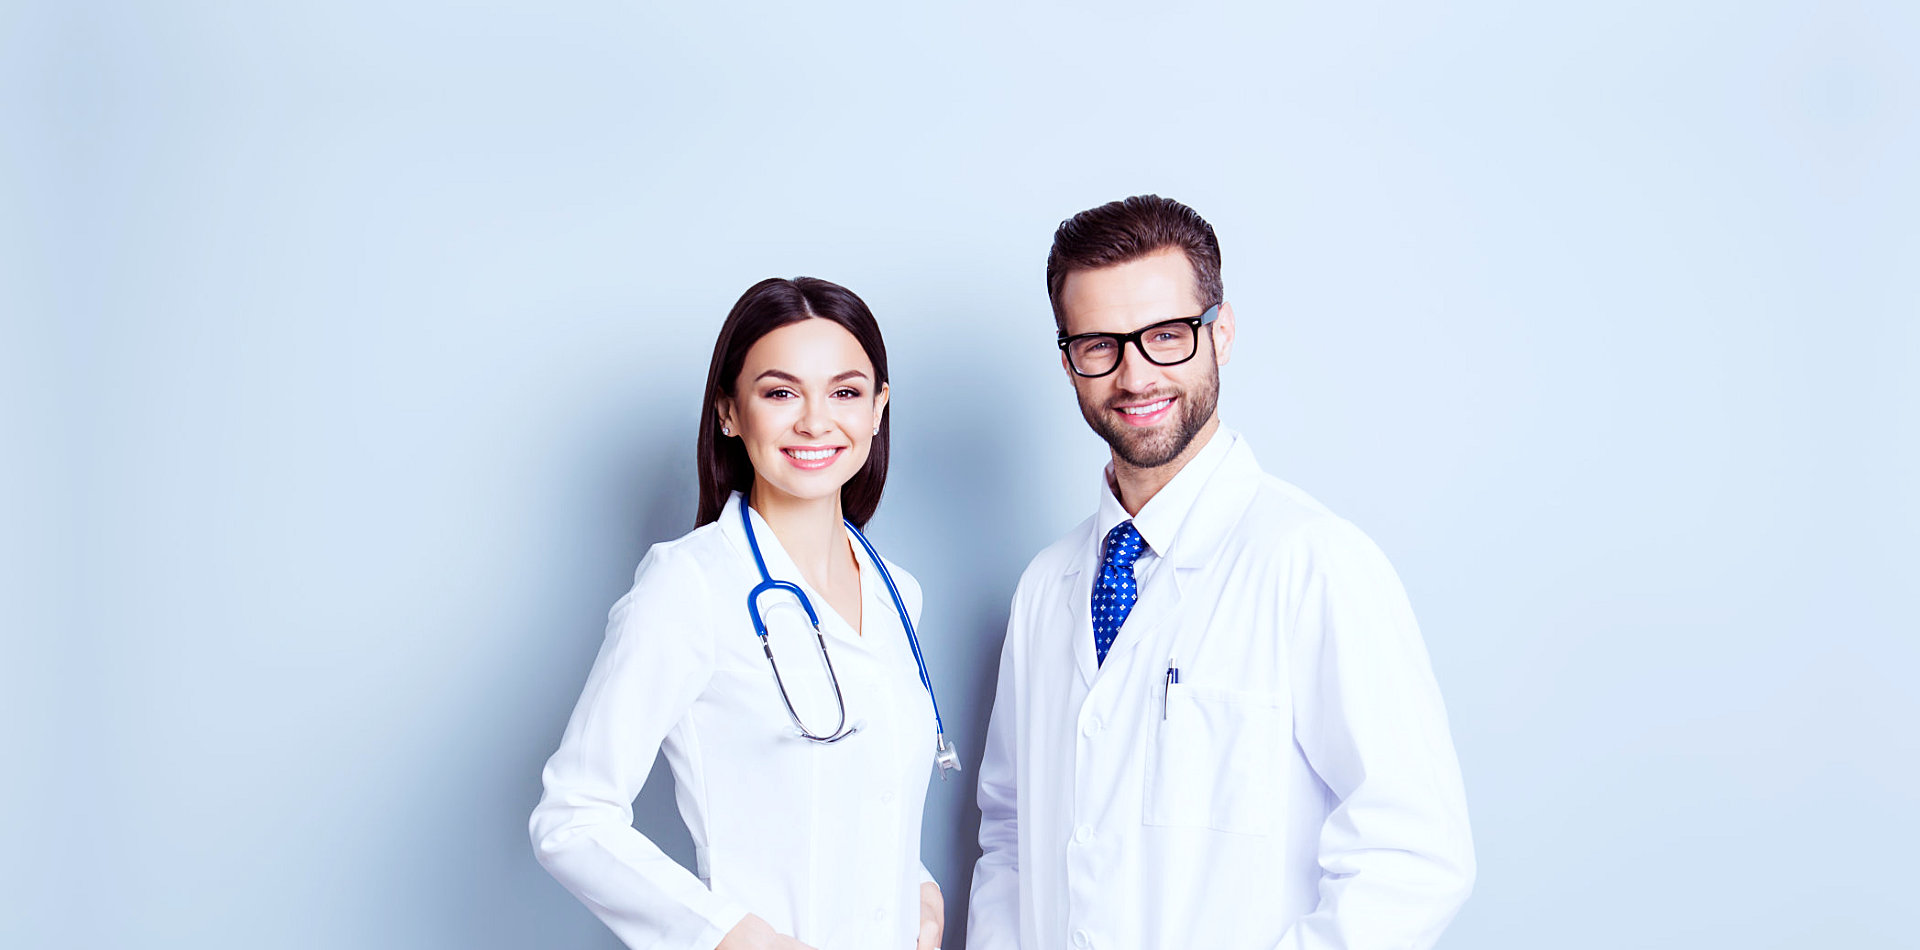 male and female doctor smiling